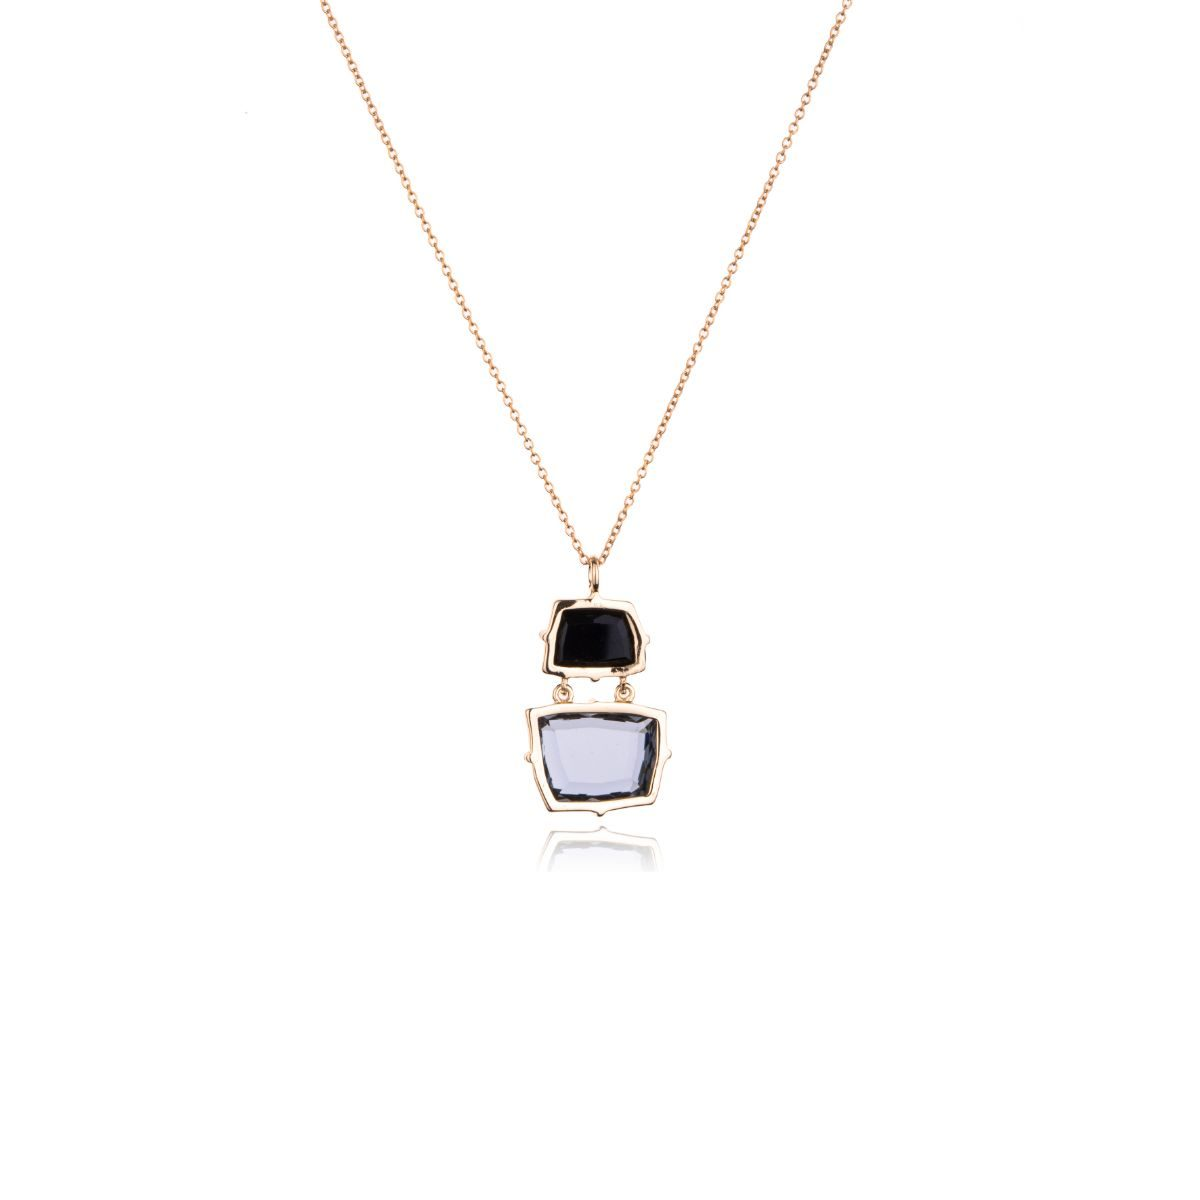 Veneto choker with a double faceted glass pendant in different colors with a square shape